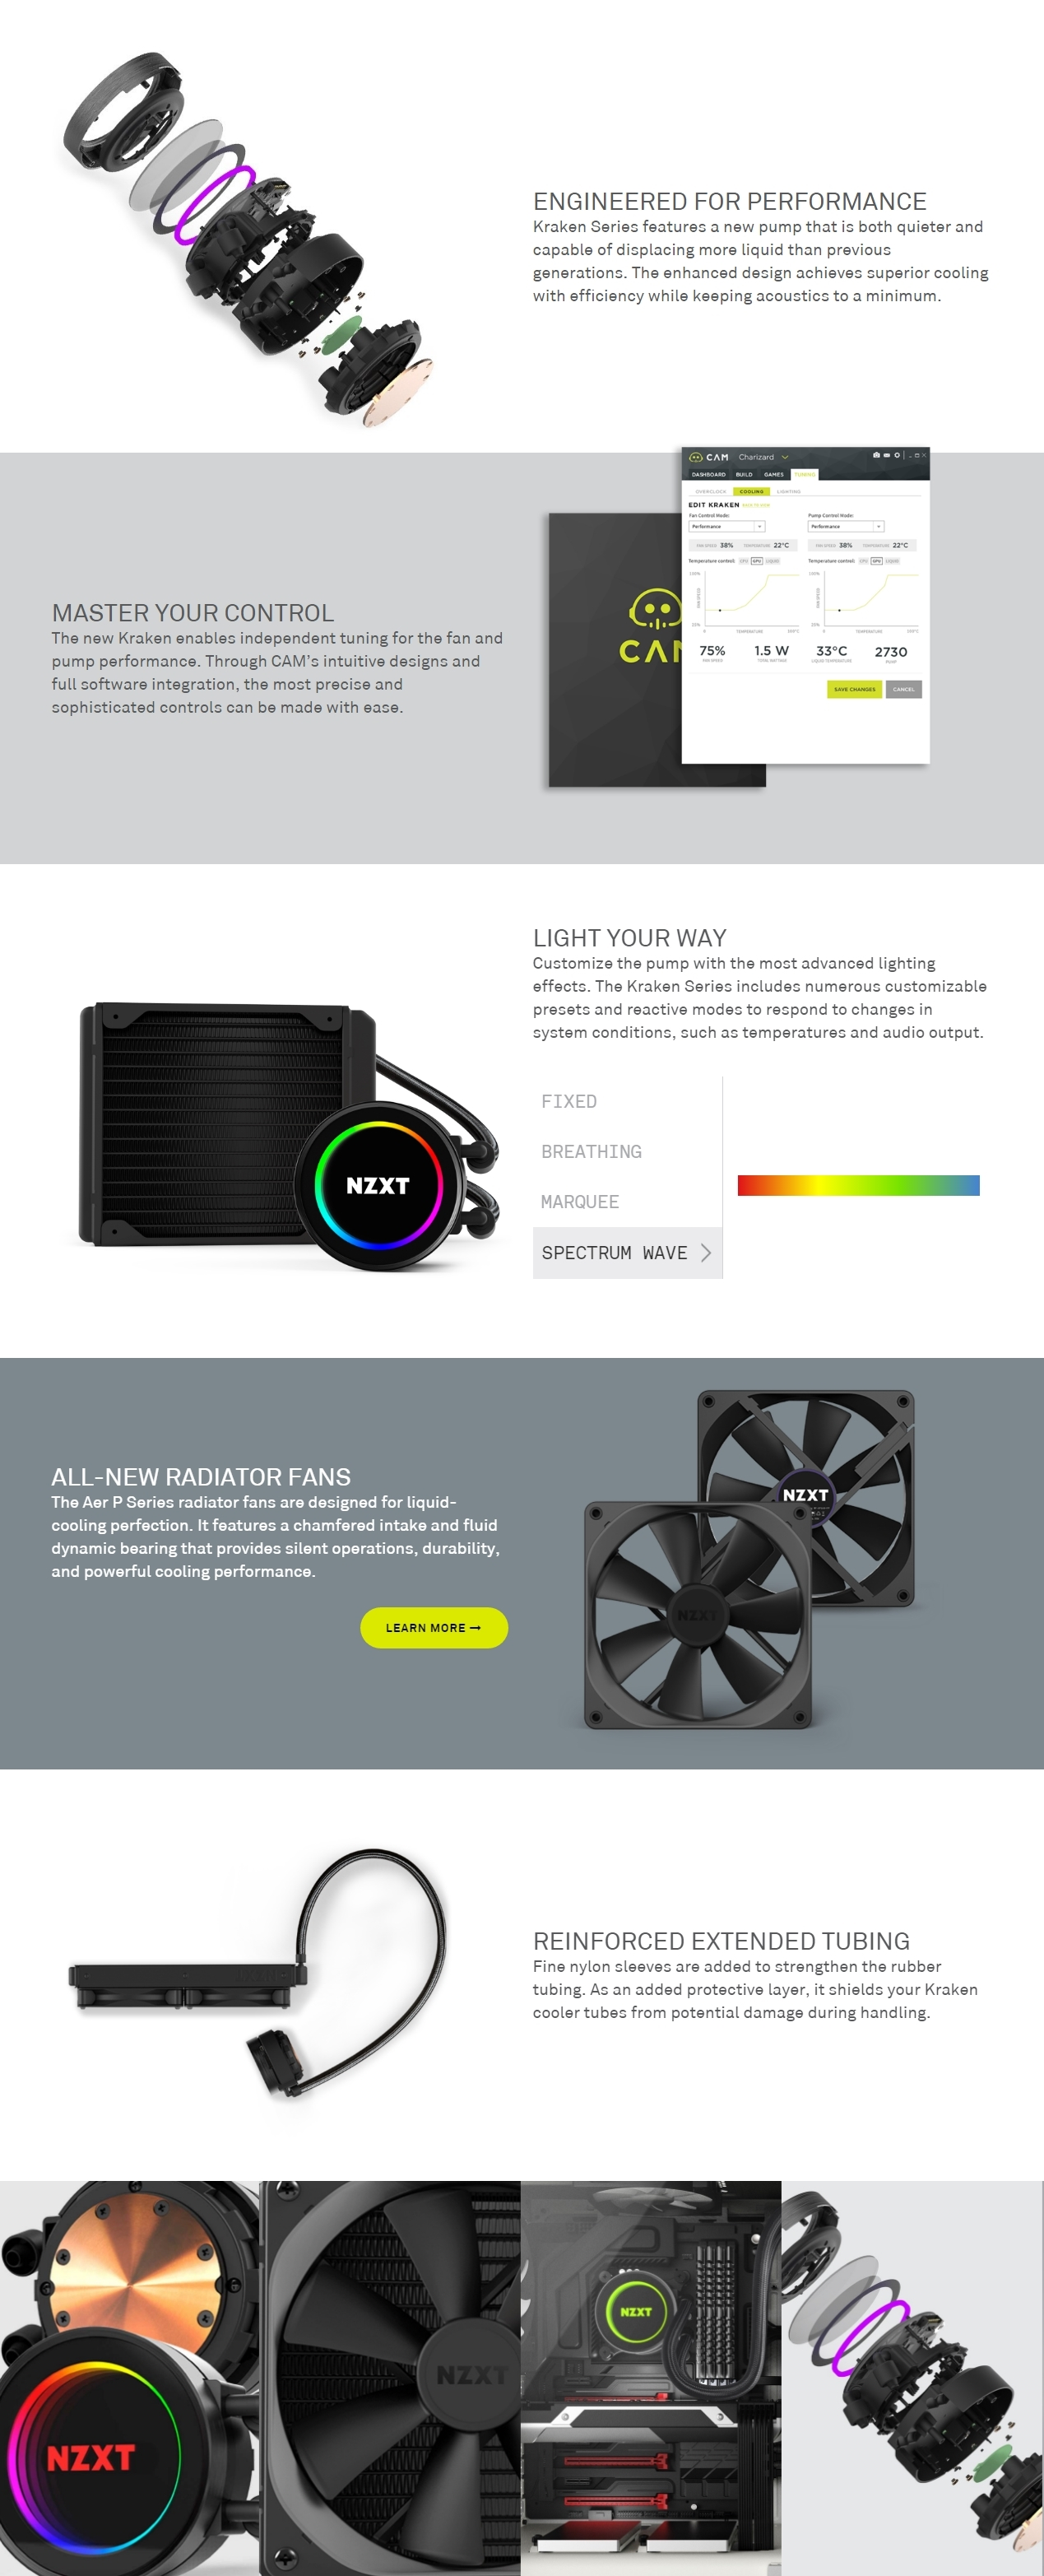 A large marketing image providing additional information about the product NZXT Kraken X42 140mm AIO Liquid CPU Cooler - Additional alt info not provided